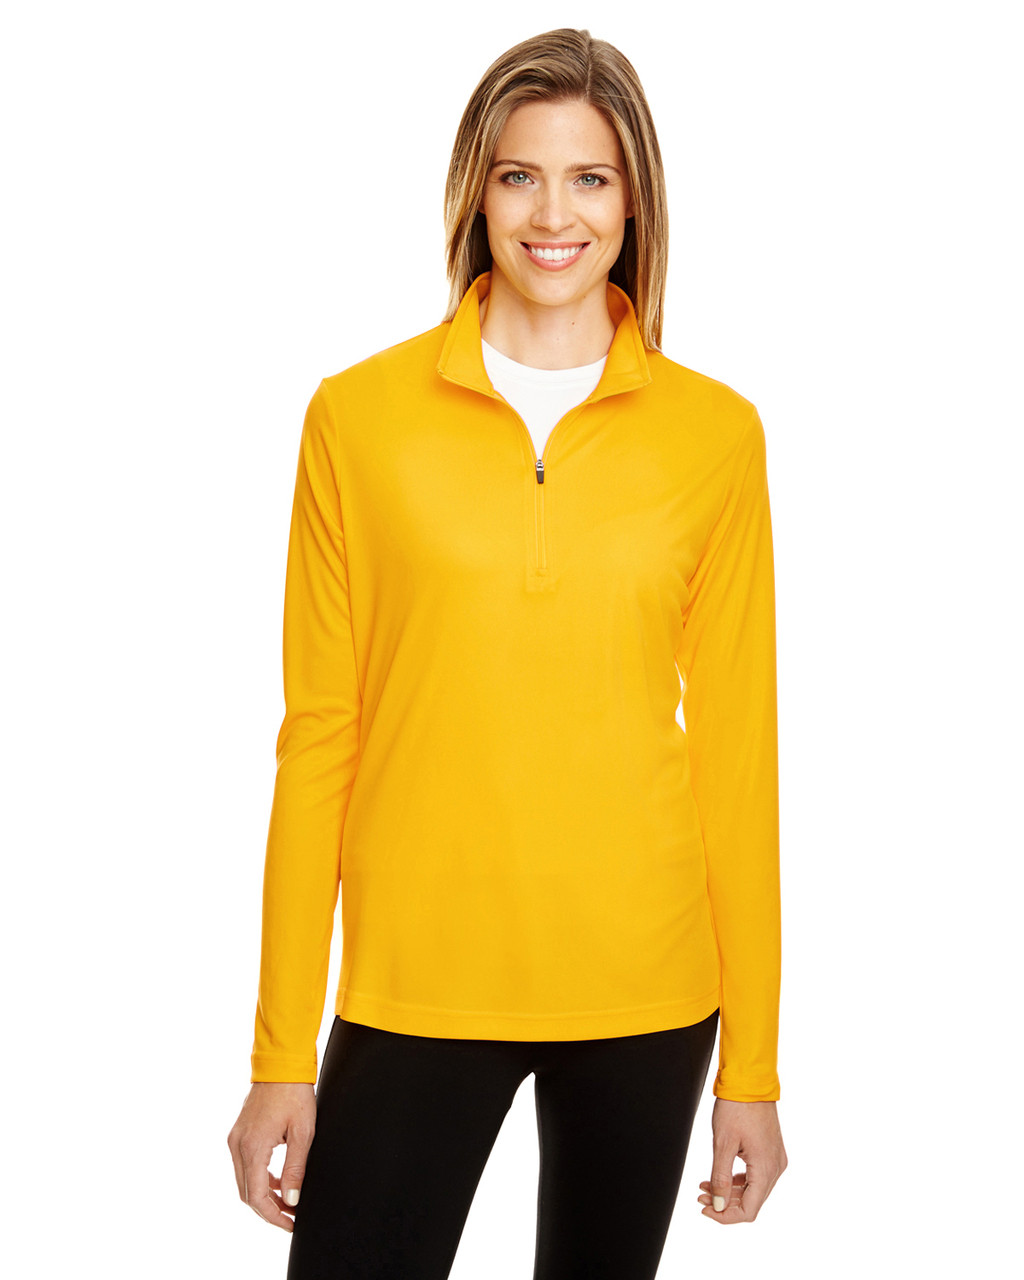 Sport Athletic Gold - TT31W Team 365 Ladies' Zone Performance Quarter-Zip Shirt